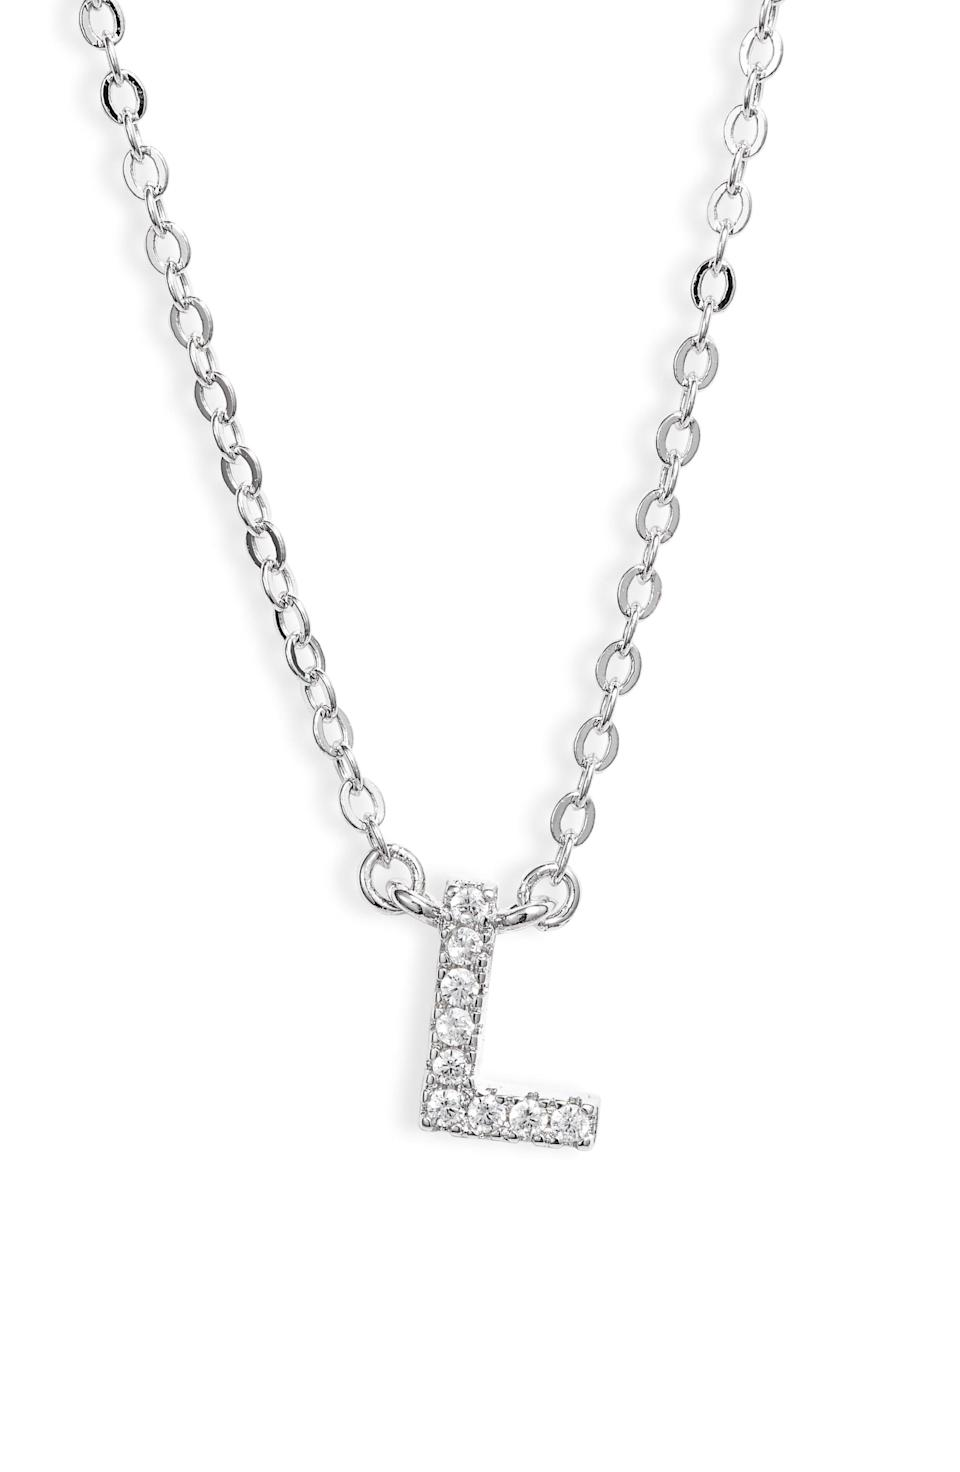 """<p>Make them feel special with this <a href=""""https://www.popsugar.com/buy/Delicate-Cubic-Zirconia-Initial-Pendant-Necklace-569760?p_name=Delicate%20Cubic%20Zirconia%20Initial%20Pendant%20Necklace&retailer=shop.nordstrom.com&pid=569760&price=45&evar1=moms%3Aus&evar9=32519221&evar98=https%3A%2F%2Fwww.popsugar.com%2Ffamily%2Fphoto-gallery%2F32519221%2Fimage%2F32519259%2FDelicate-Cubic-Zirconia-Initial-Pendant-Necklace&list1=gifts%2Choliday%2Cgift%20guide%2Cgifts%20for%20kids%2Ckid%20shopping%2Ctweens%20and%20teens%2Choliday%20for%20kids%2Cgifts%20for%20teens&prop13=api&pdata=1"""" class=""""link rapid-noclick-resp"""" rel=""""nofollow noopener"""" target=""""_blank"""" data-ylk=""""slk:Delicate Cubic Zirconia Initial Pendant Necklace"""">Delicate Cubic Zirconia Initial Pendant Necklace </a> ($45).</p>"""